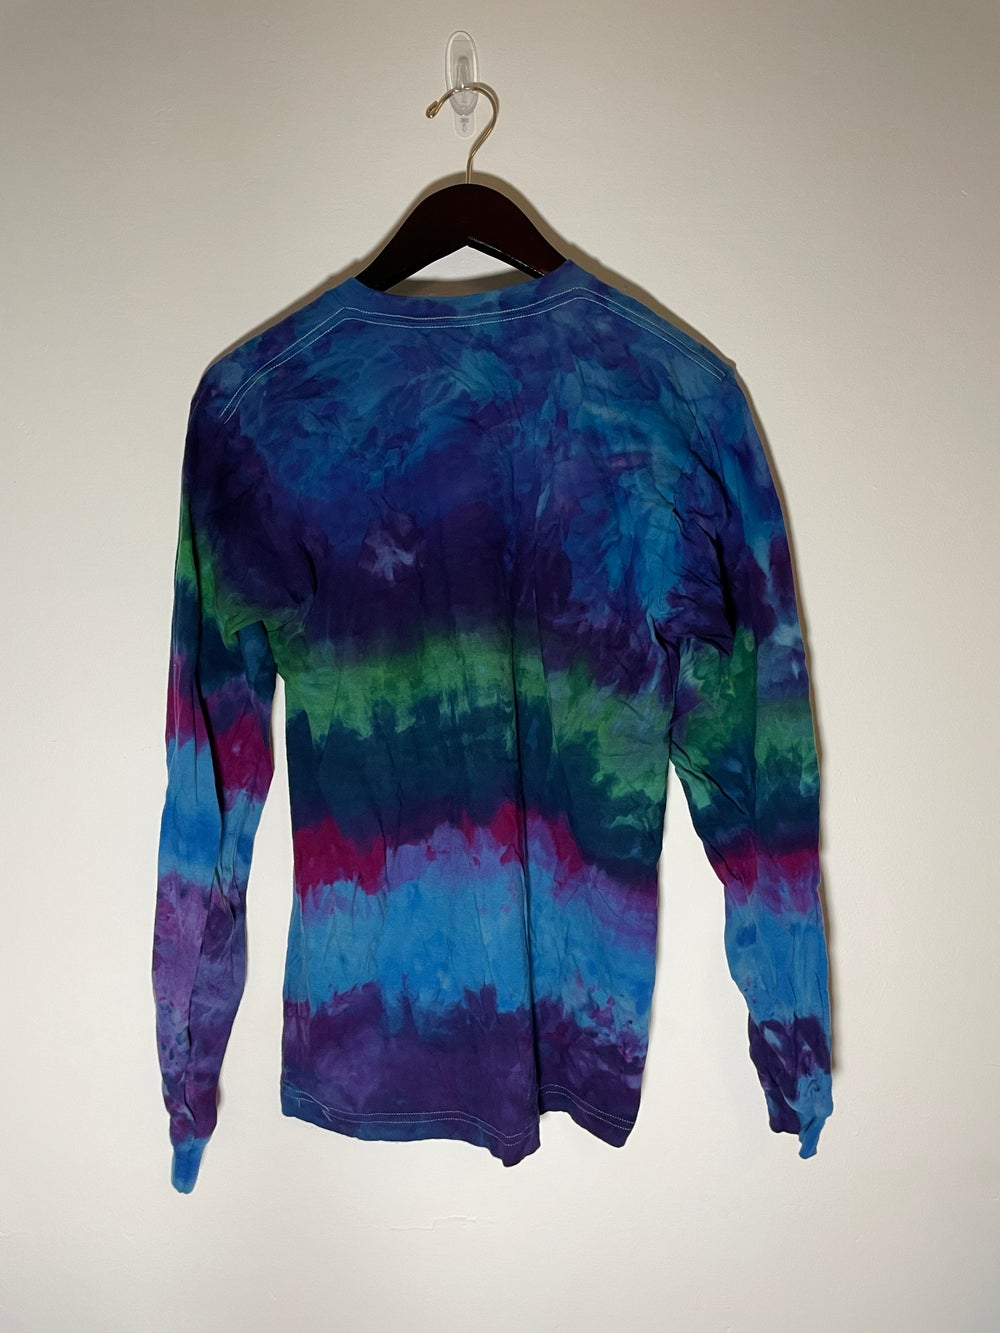 Long Sleeve Tie Dye #4 - Medium